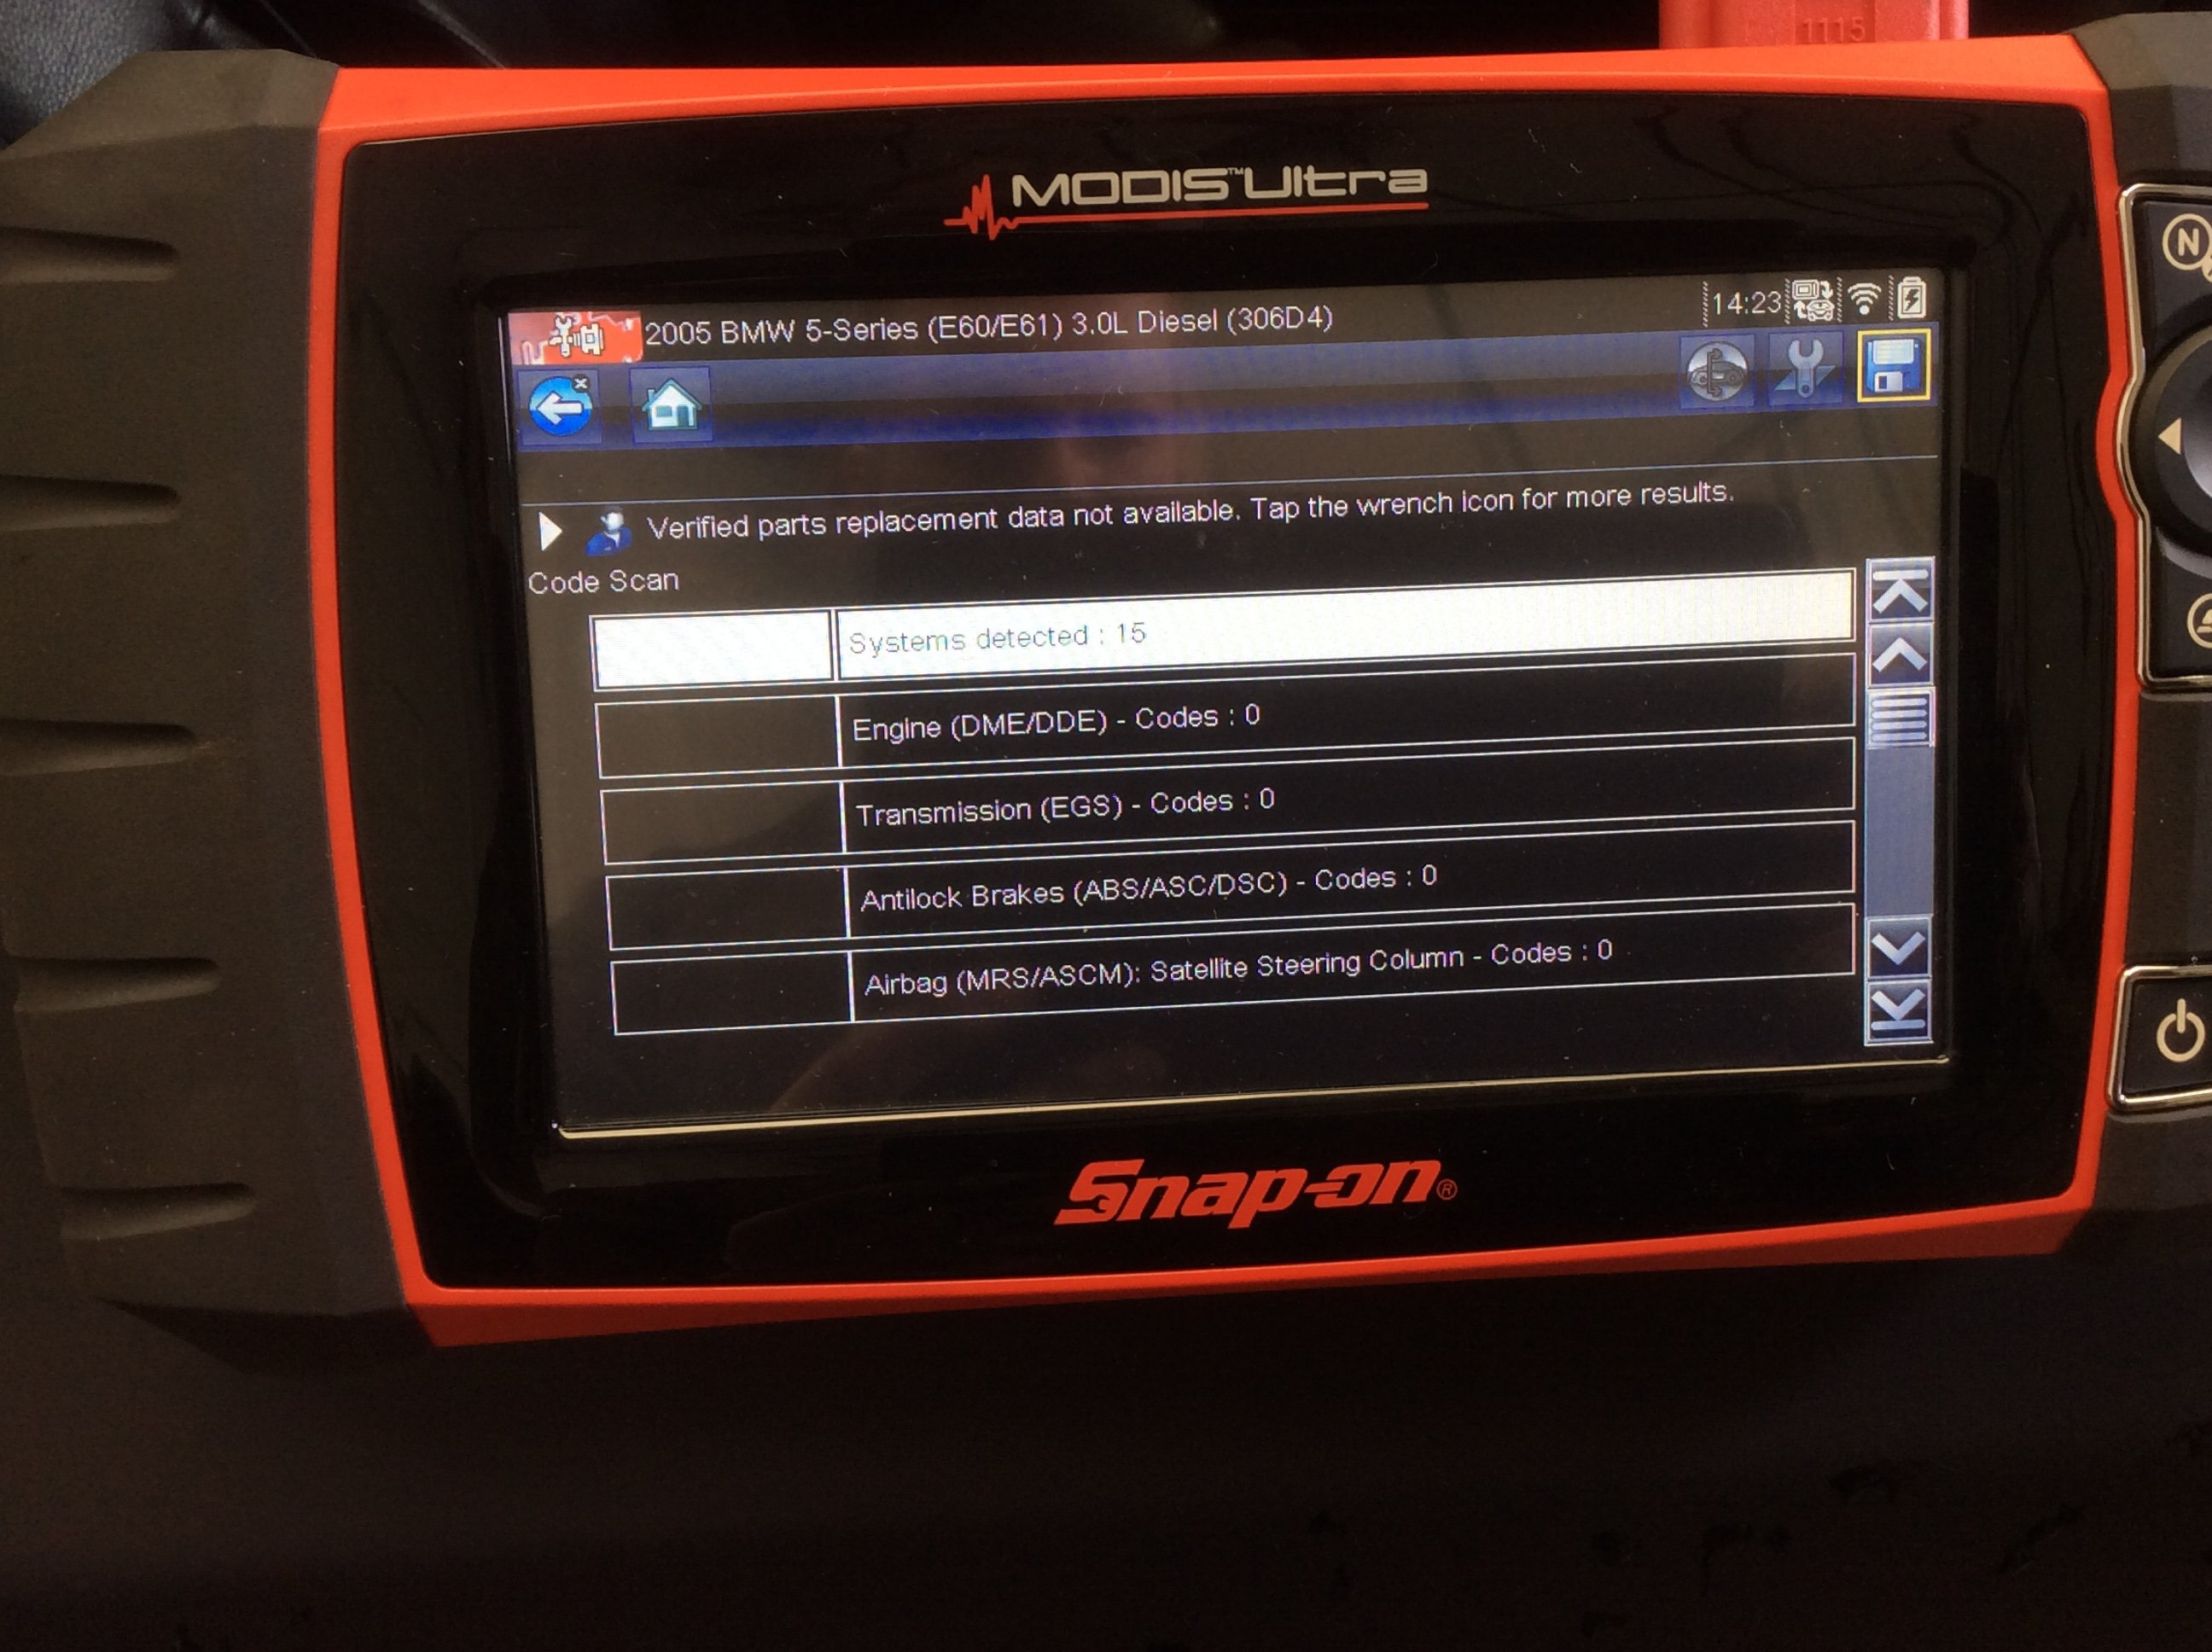 Car diagnostic testing